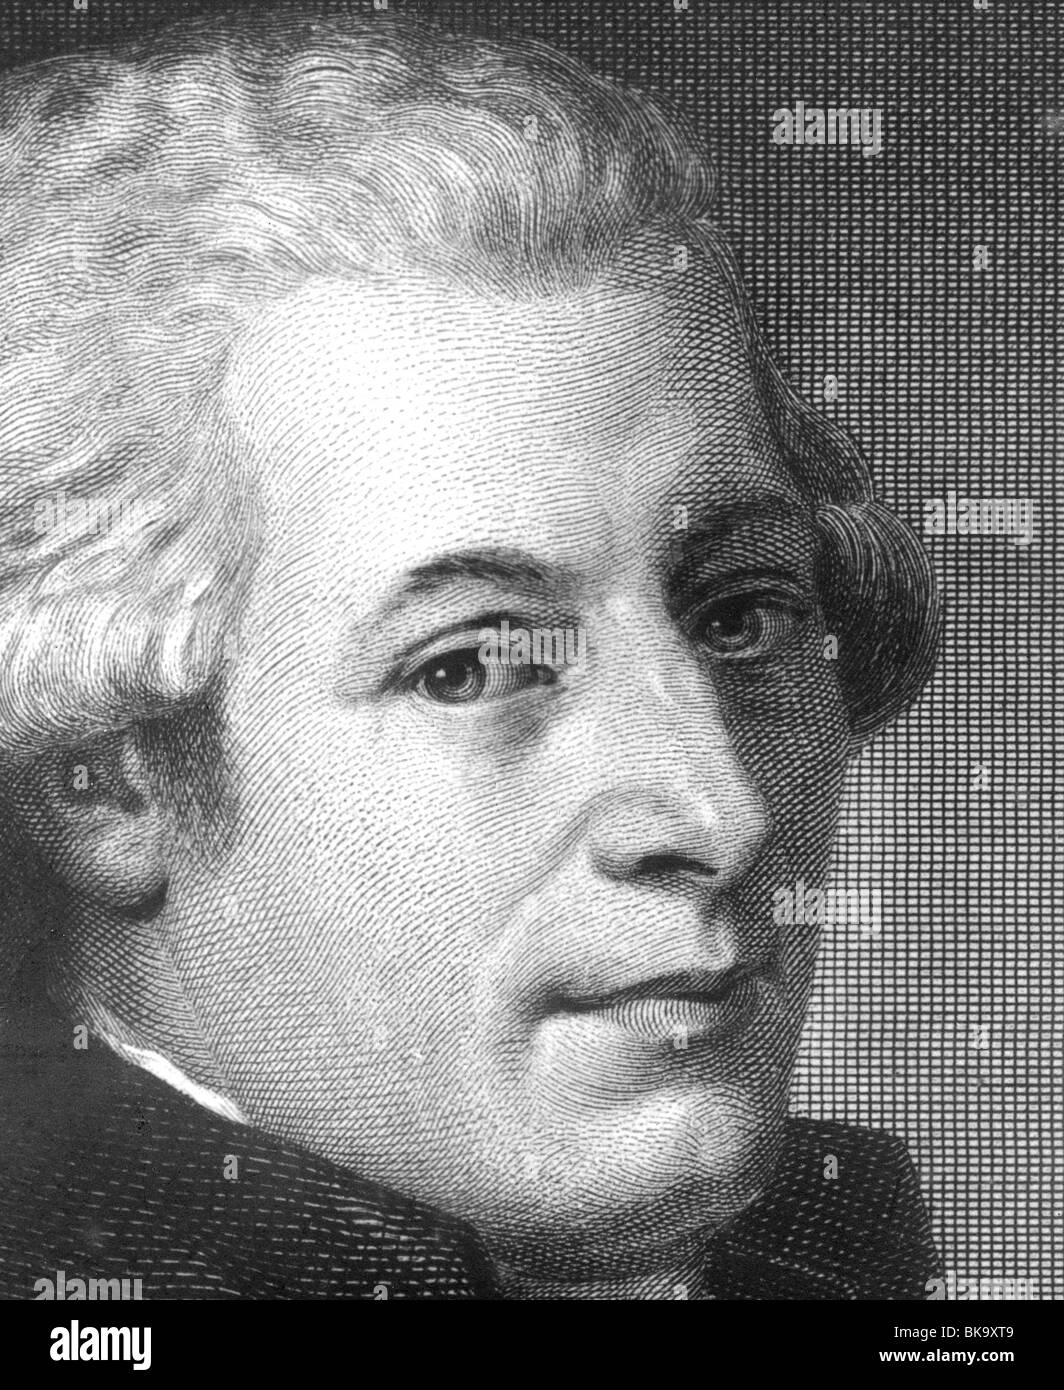 a biography of wolfgang amadeus mozart a prolific and influential composer in classical era Wolfgang amadeus mozart (27 january 1756 in salzburg - 5 december 1791 in vienna) was a prolific and influential composer of the classical era.